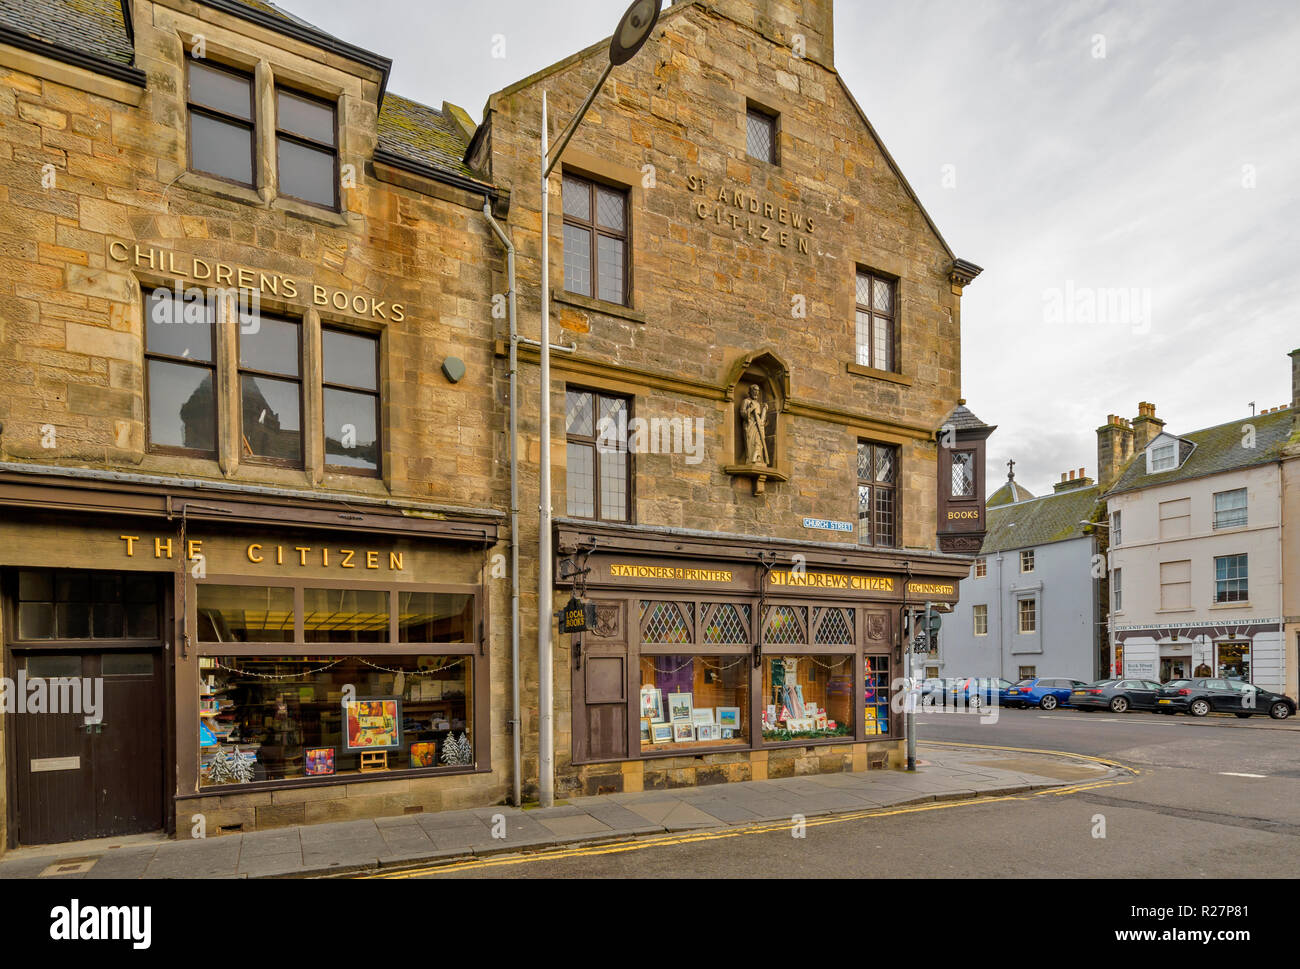 ST ANDREWS FIFE SCHOTTLAND St. Andrews BÜRGER EIN ALTES GEBÄUDE UND SHOP IN der Church Street Stockbild